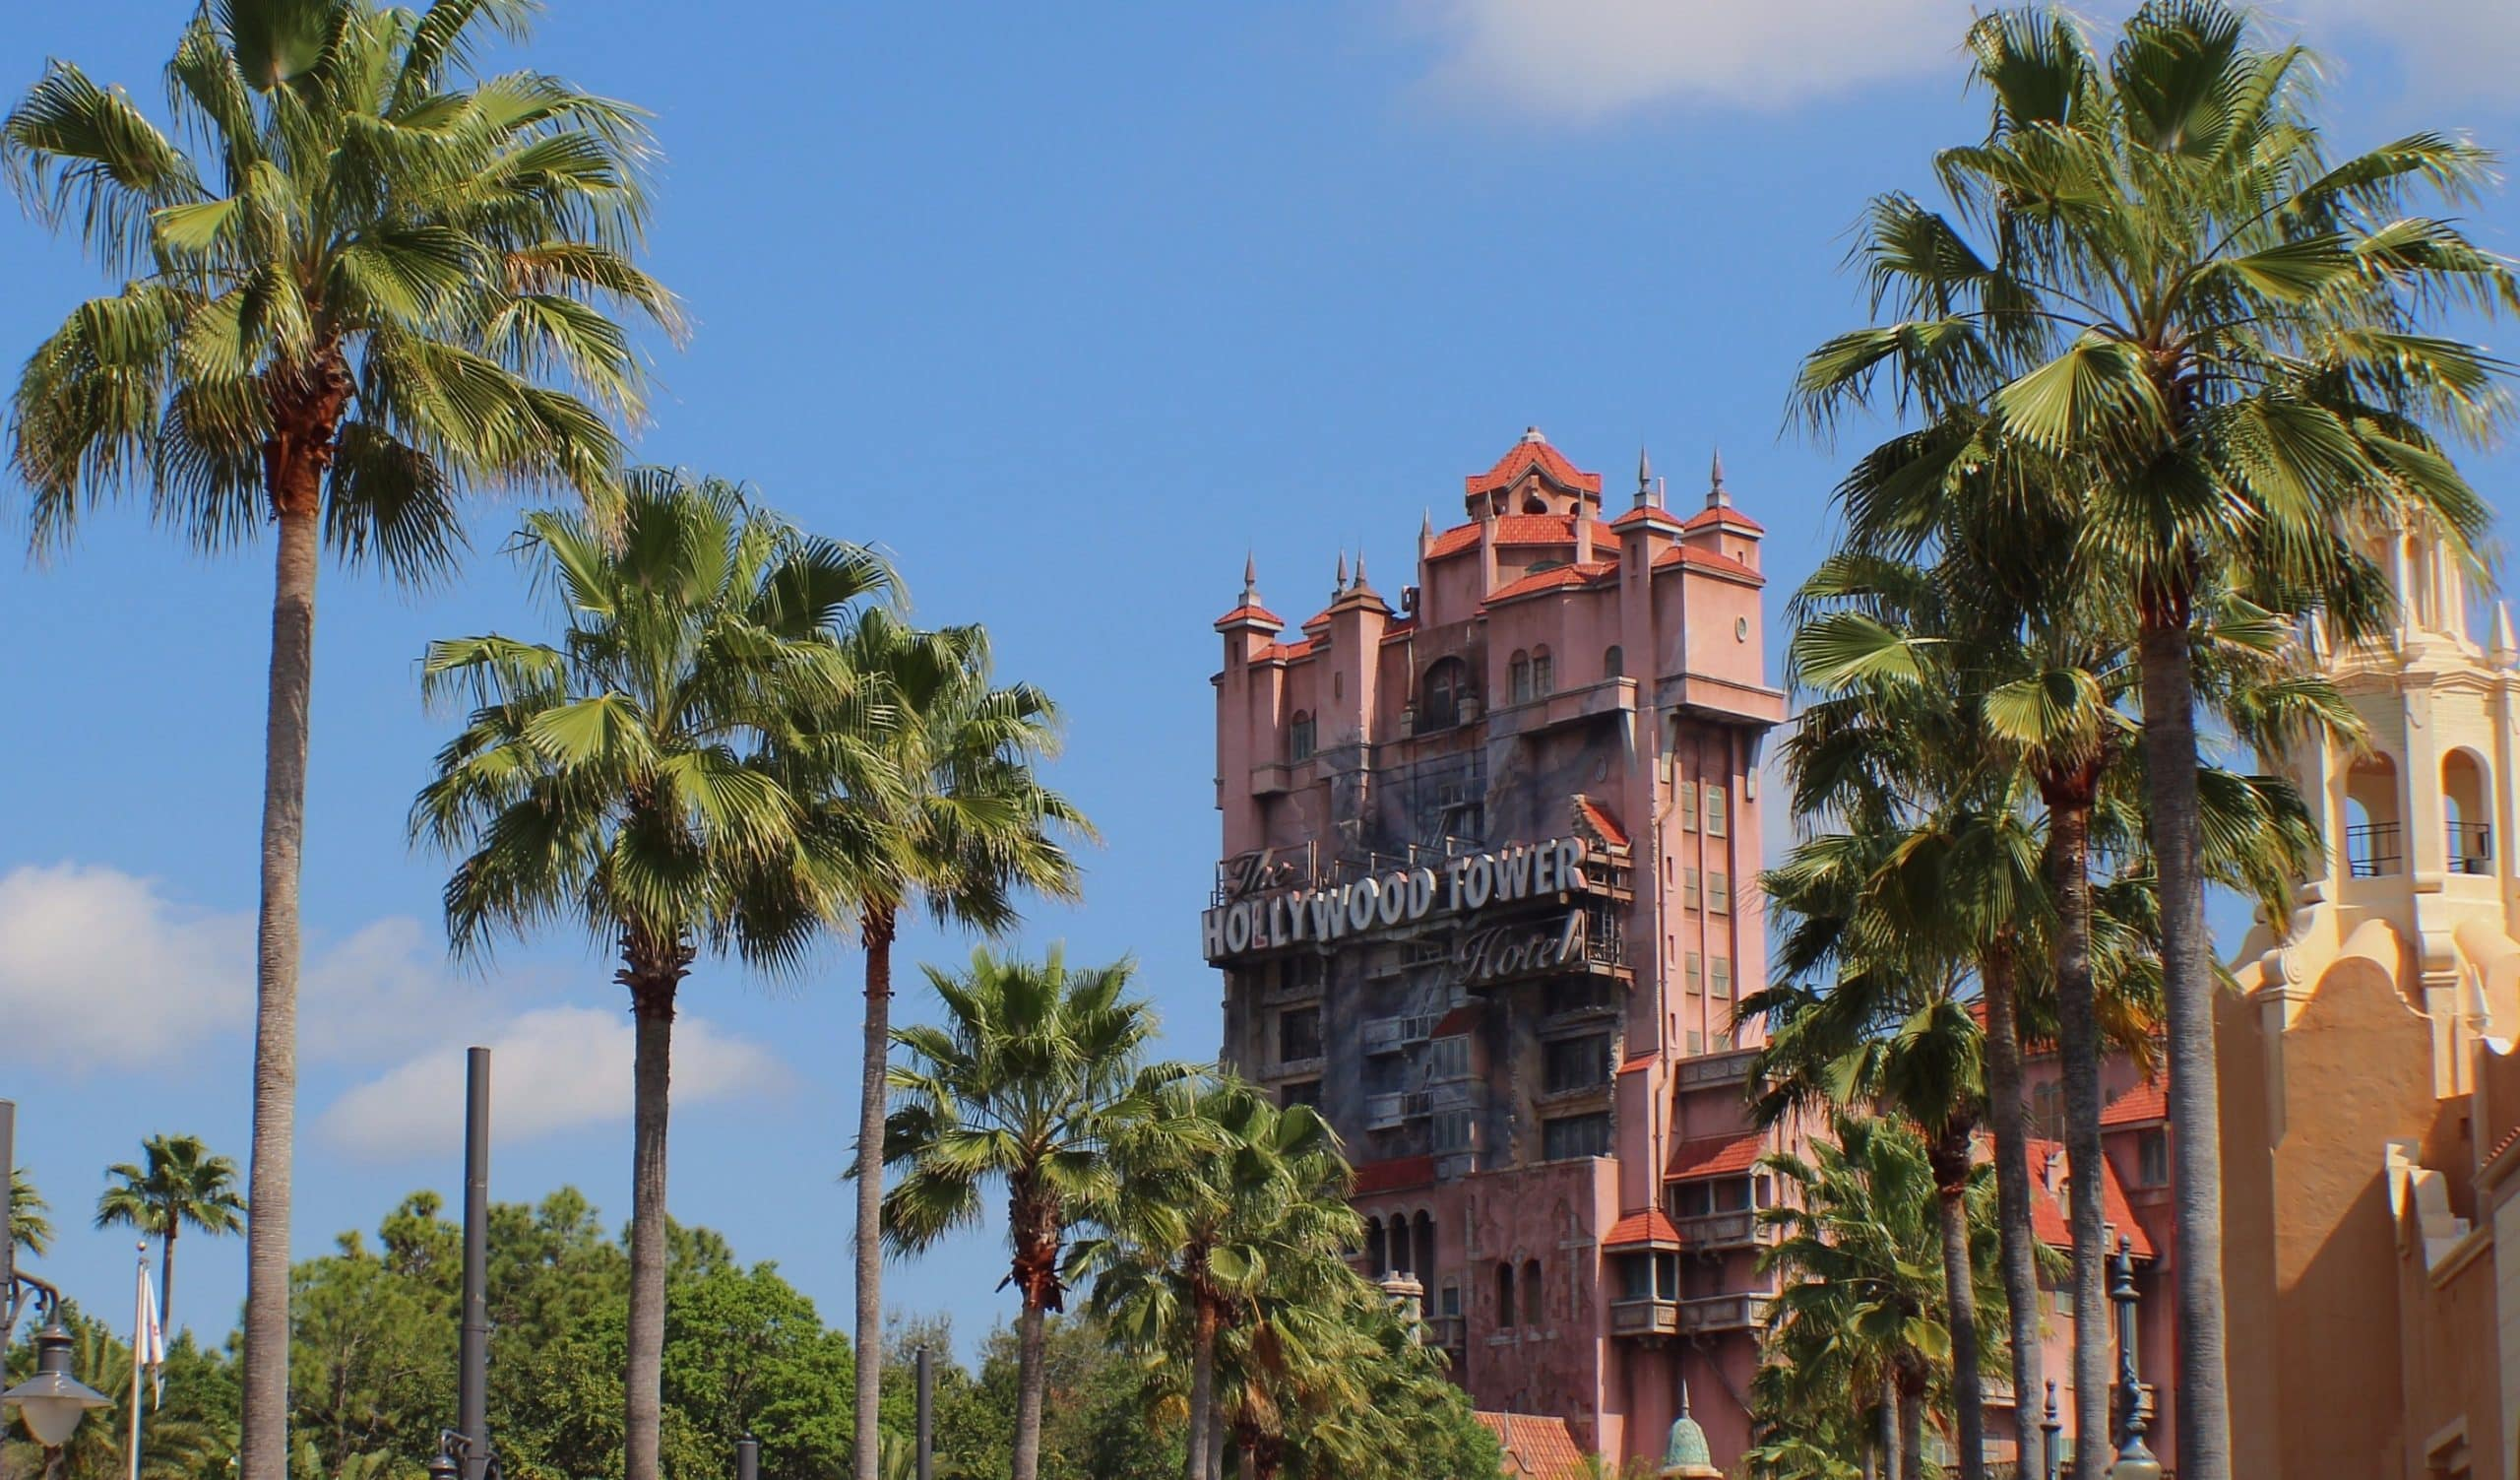 Hollywood Tower Hotel endroits instagrammés